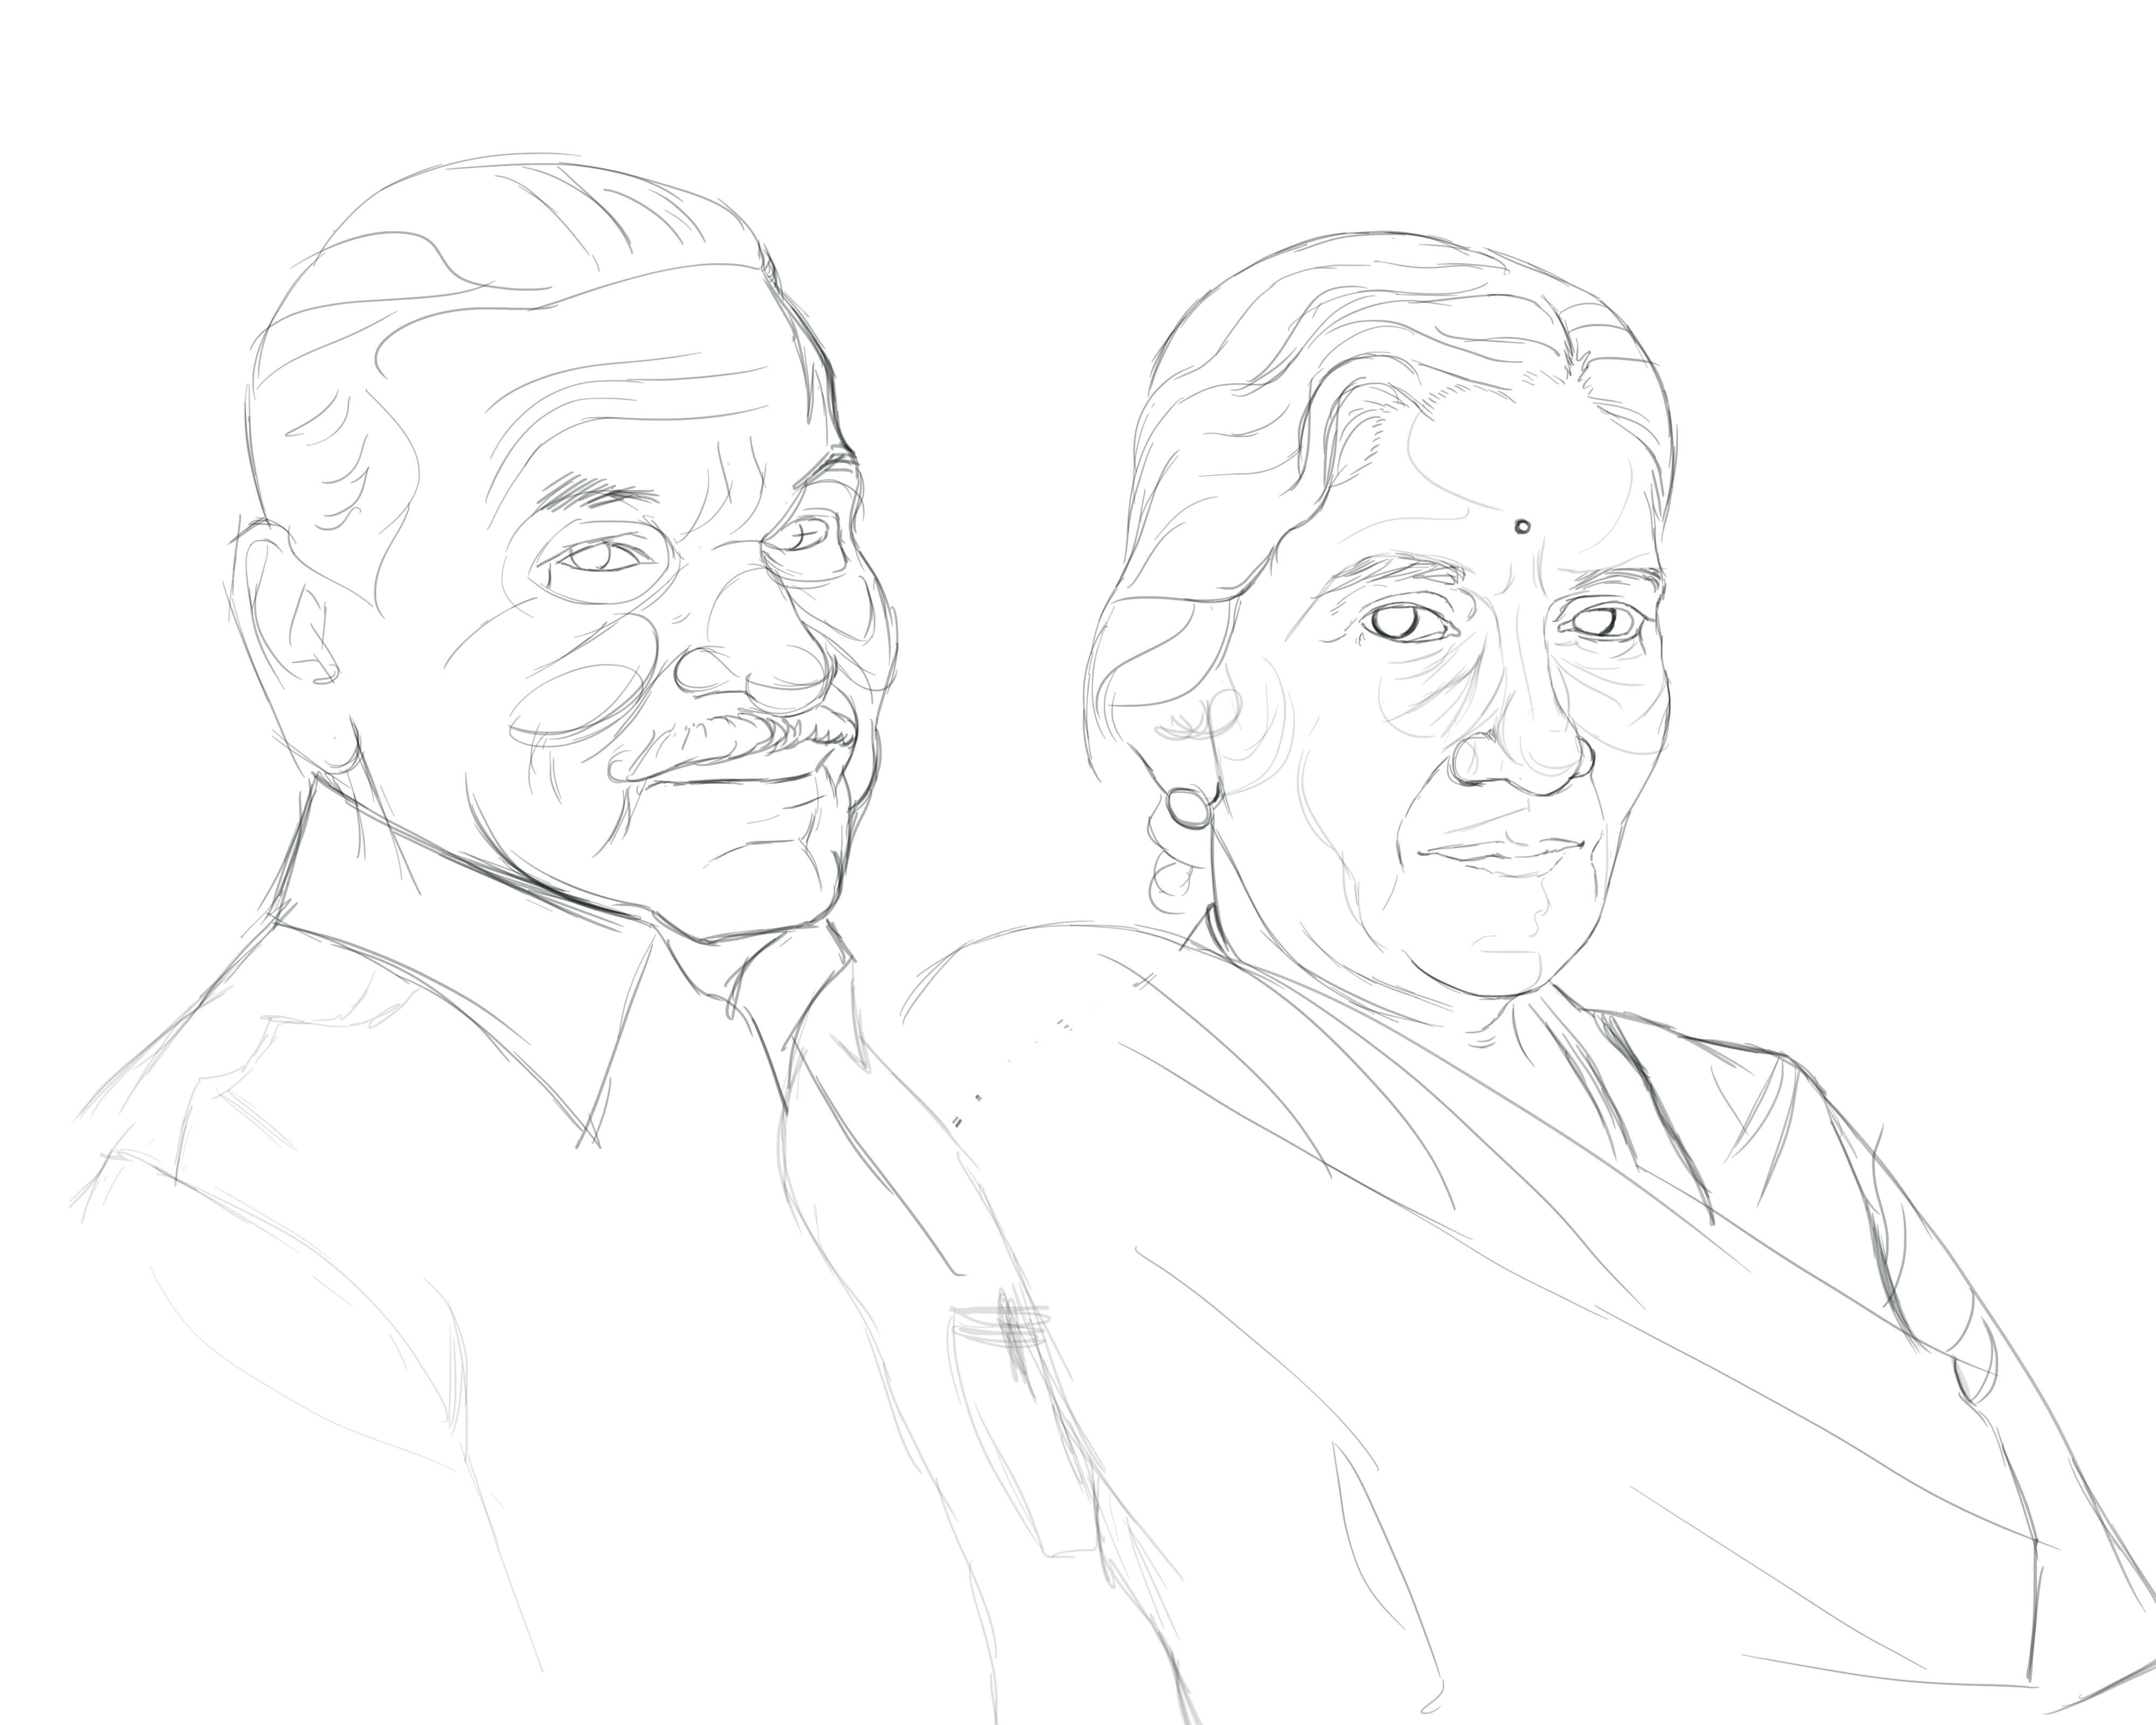 WIP Line Drawing of Portrait by Stephanie Campbell